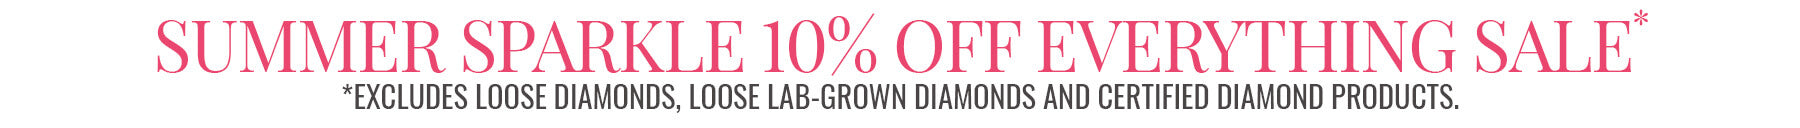 Summer Sparkle 2021 10% Sale - God now through July 19th. *EXCLUDES Loose Diamonds, Loose LAb-Grown Diamonds and Certified Diamond Products.